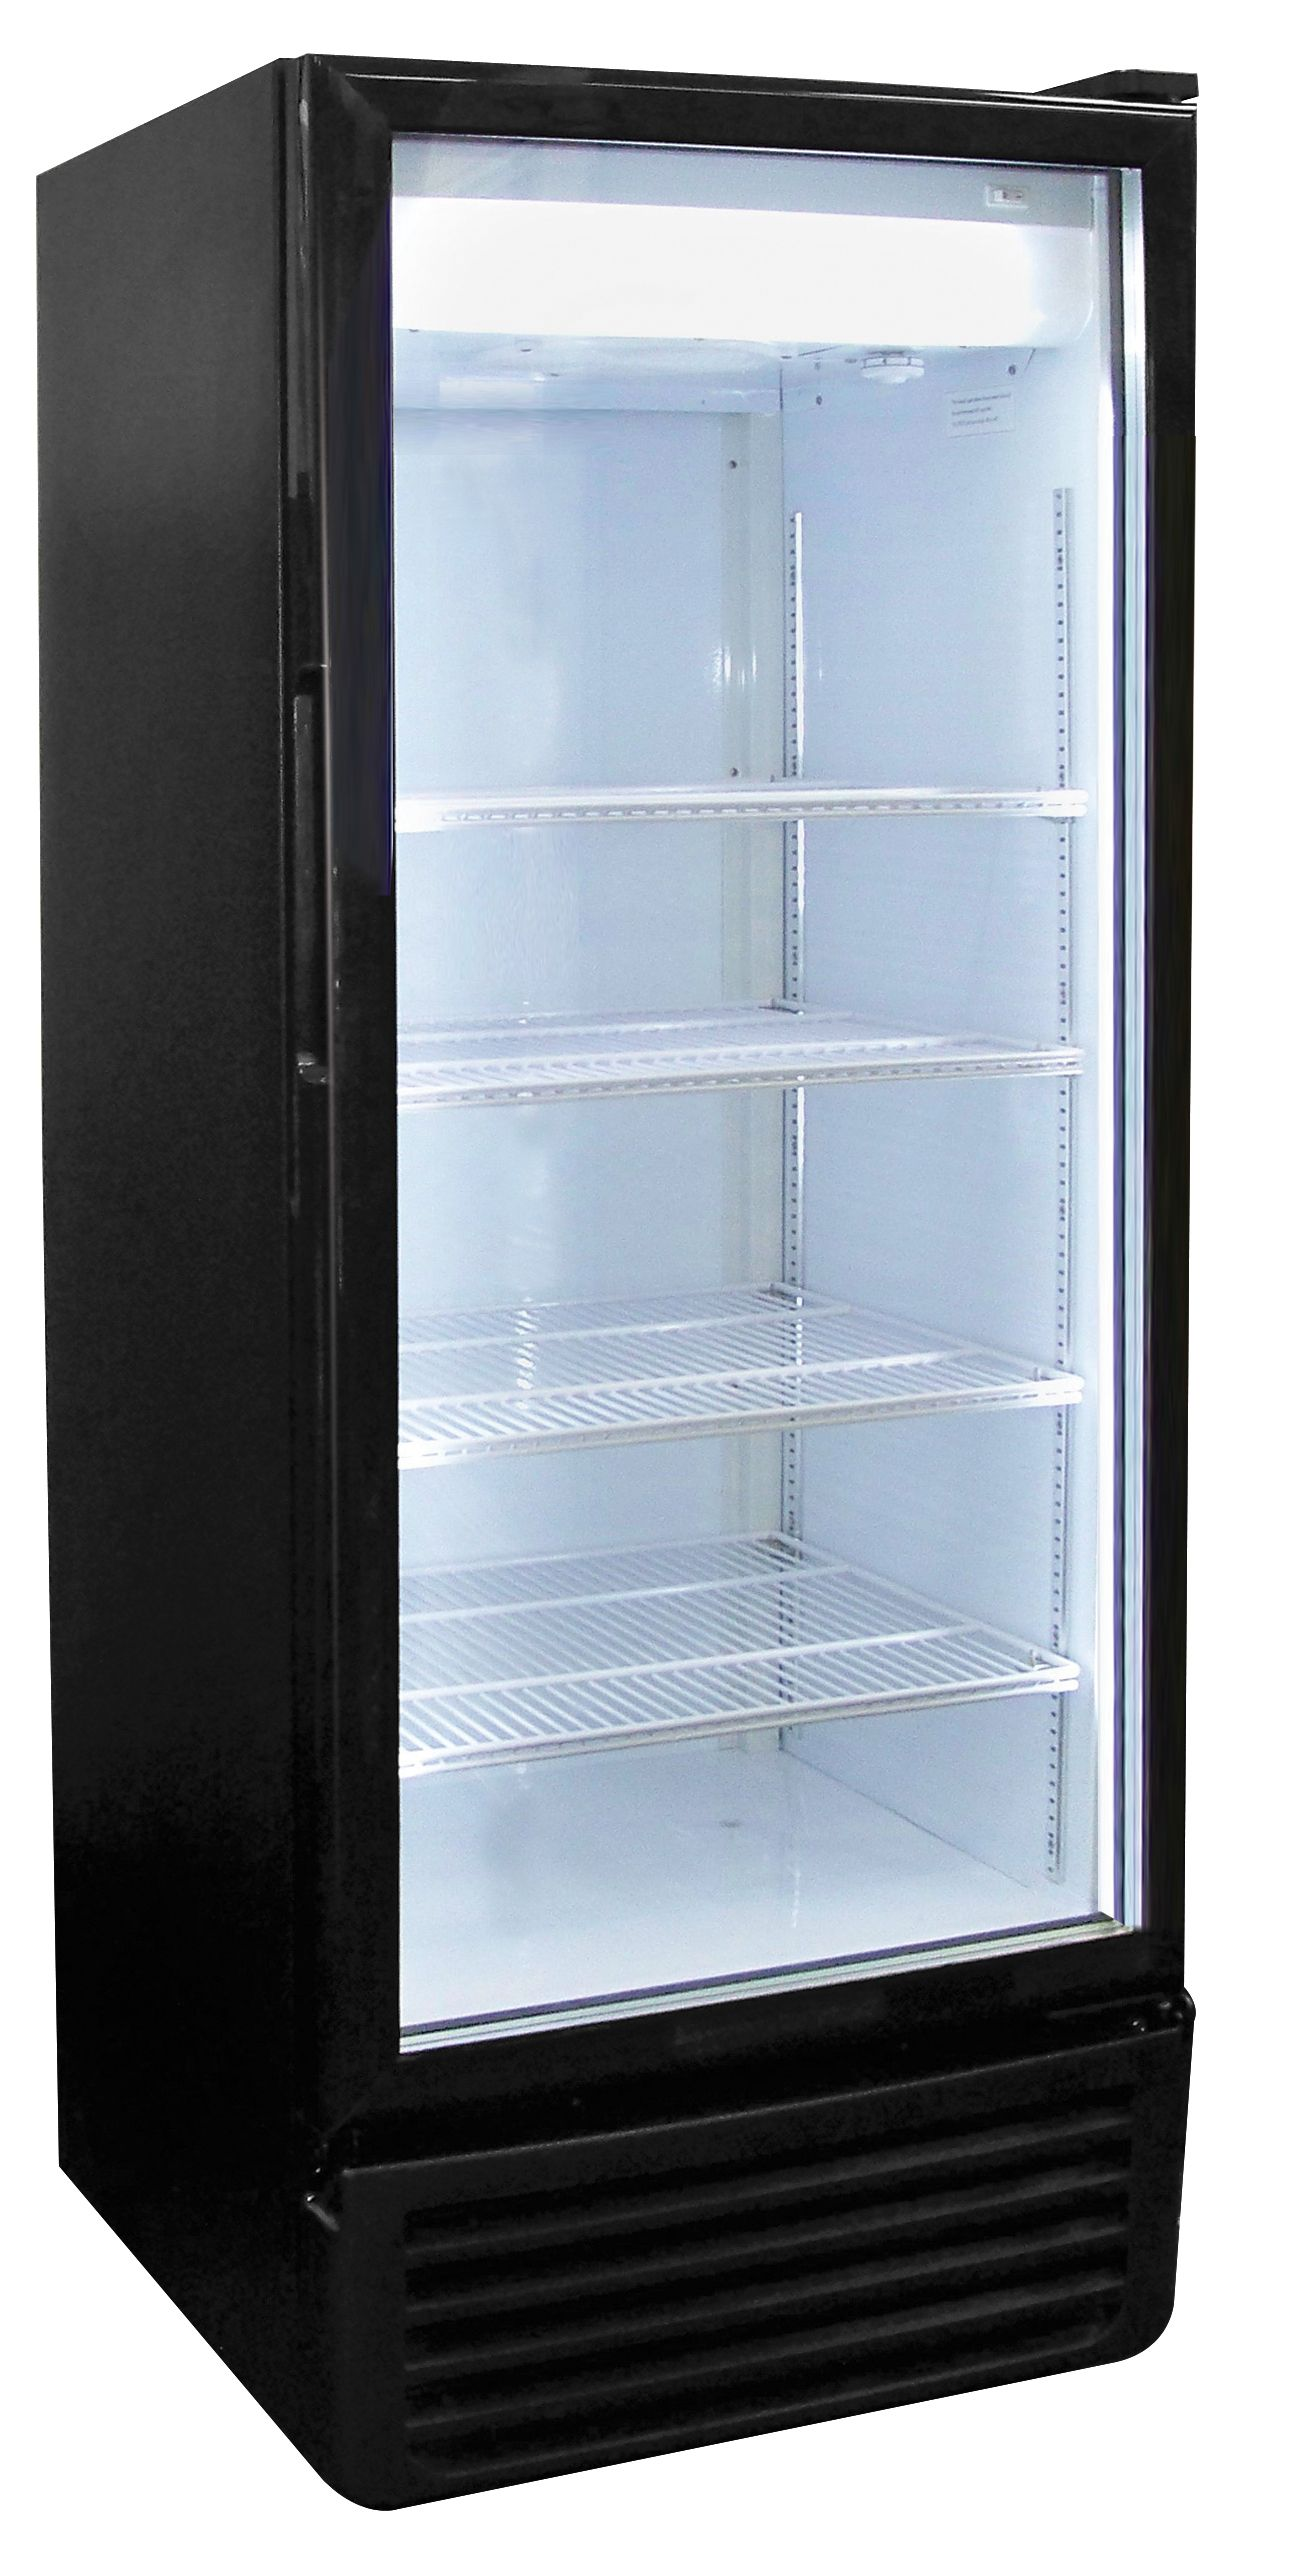 Gdr Glass Door Cooler Gdr 12 Shown Refrigerator Commercialrefrigeration Ulapproved Etlapproved Cooler Glassdoor Green Tech Glass Glass Door